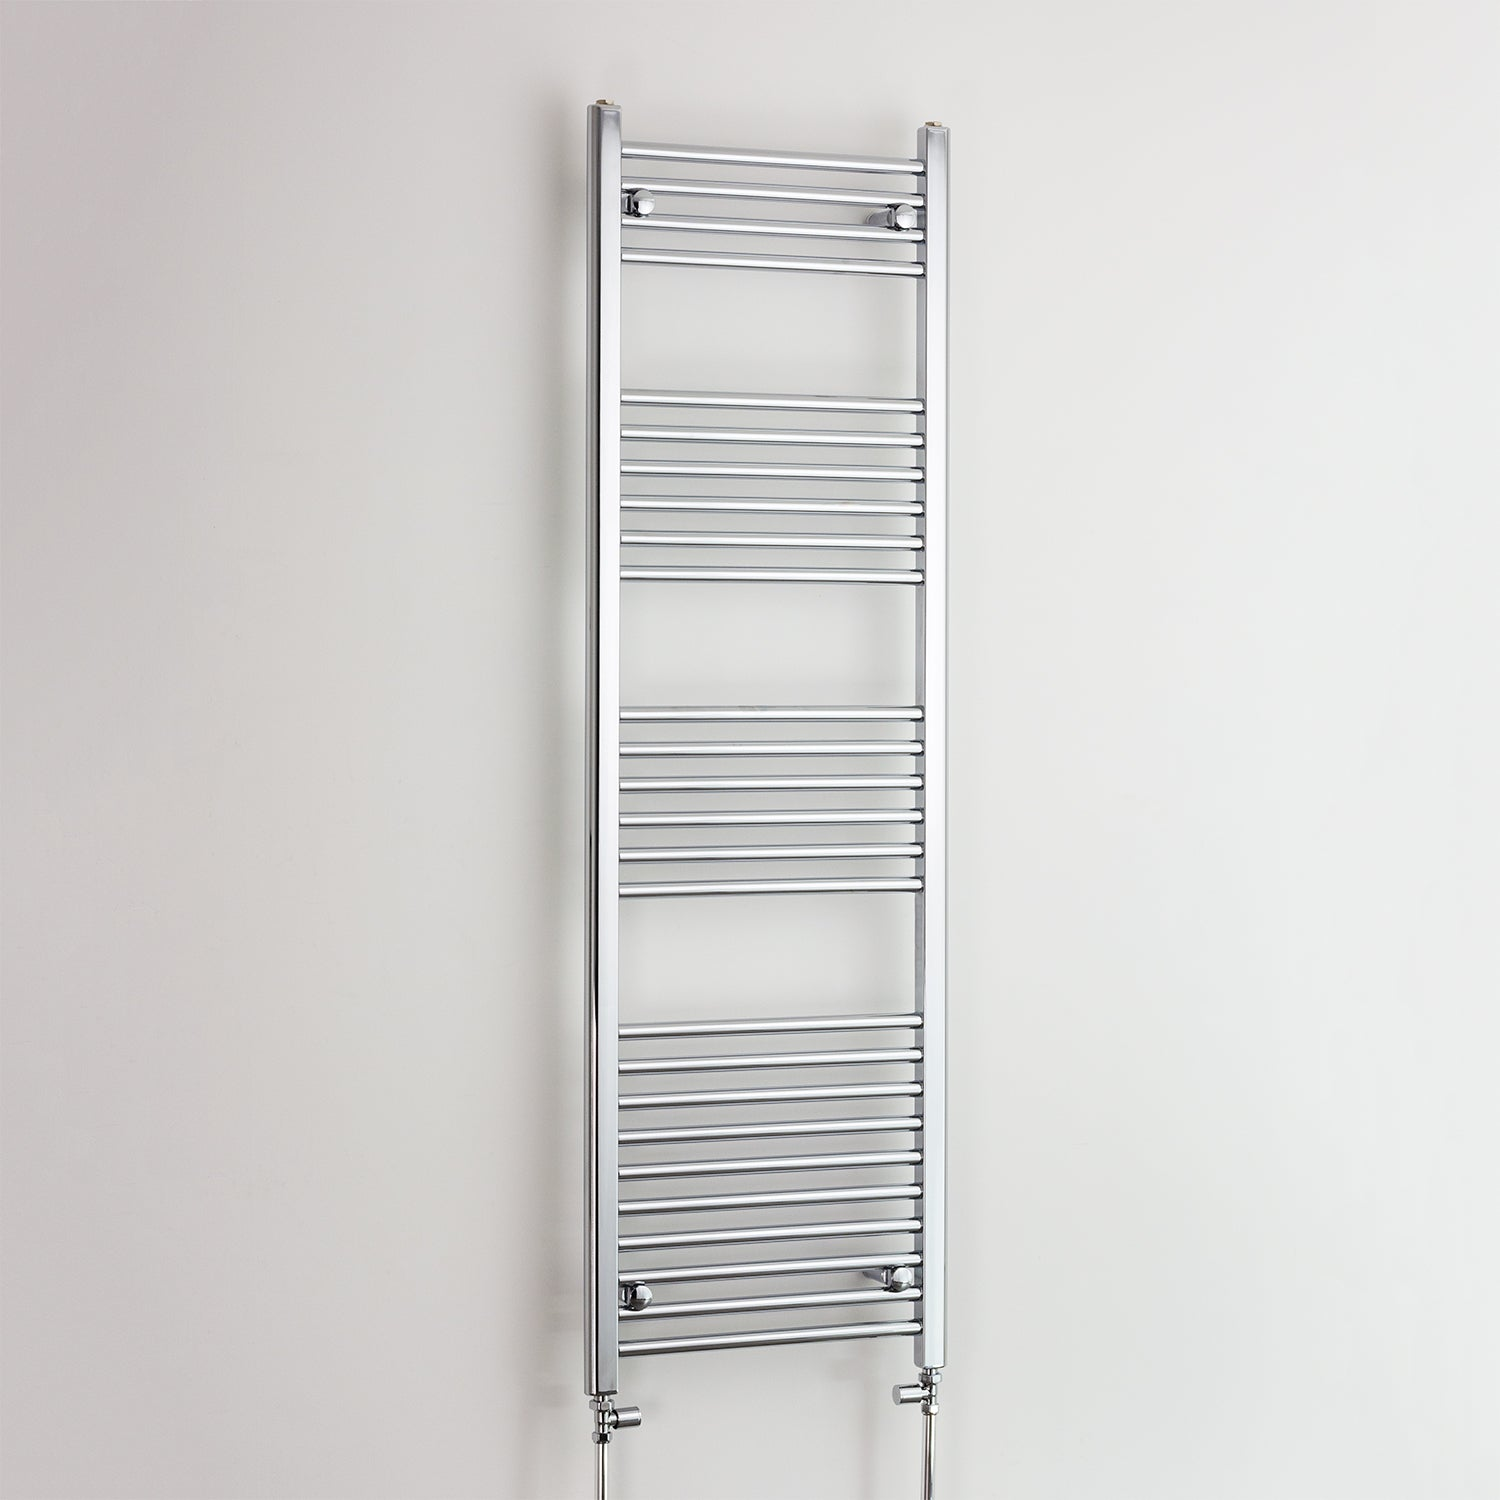 400mm Wide 1600mm High Chrome Towel Rail Radiator With Straight Valve